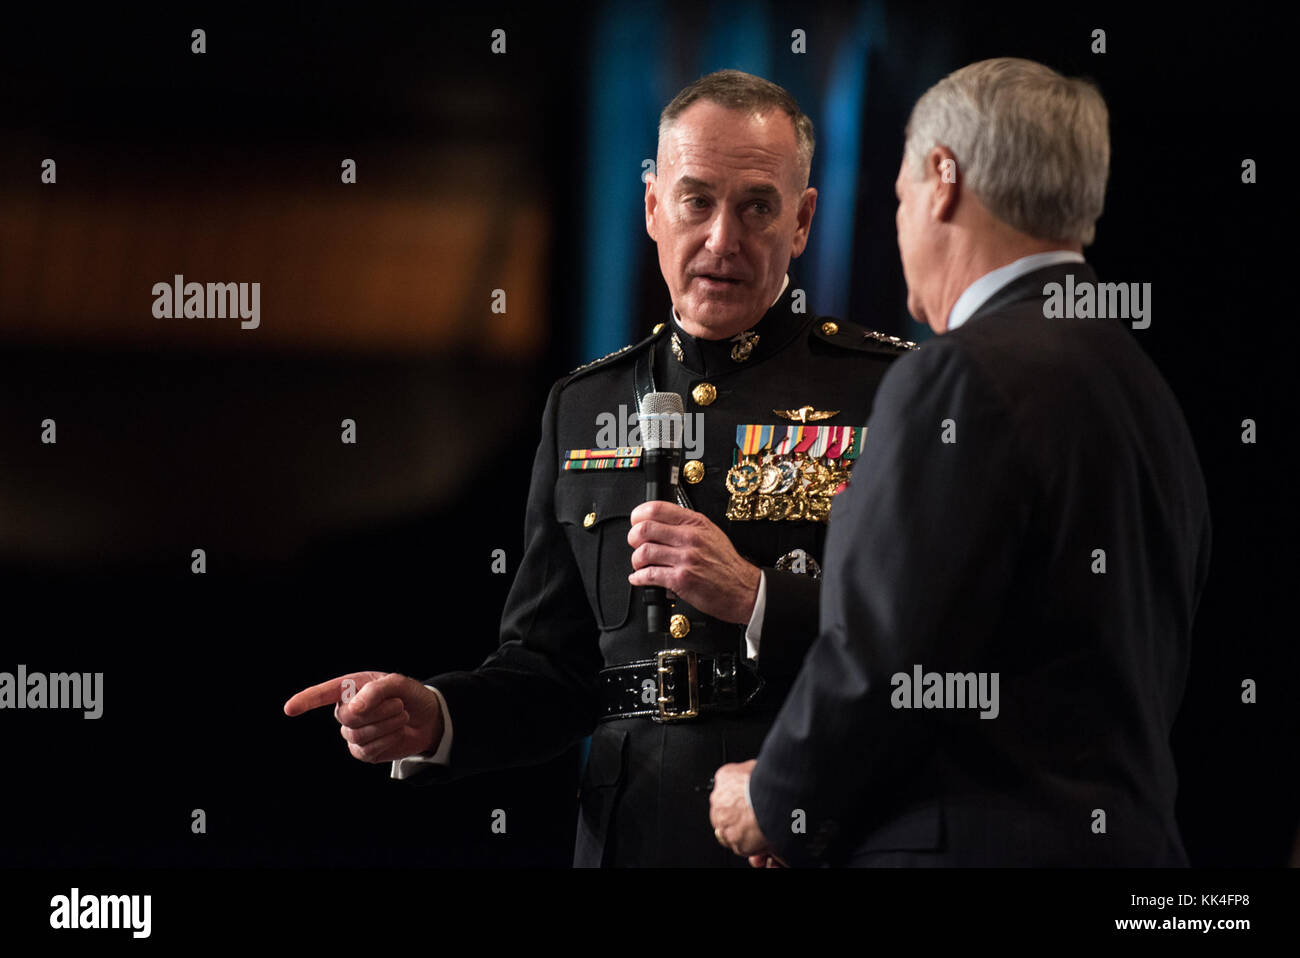 U.S. Marine Corps Gen. Joseph F. Dunford, Jr., chairman of the Joint Chiefs of Staff, thanks Mr. Tom Lyons, Founder and chairman of the Semper Fi Society, during the Semper Fidelis Society Boston U.S. Marine Corps Birthday Luncheon at the Boston Convention & Exhibition Center, Massachusetts, Nov. 13, 2017. (DoD Photo by U.S. Army Sgt. James K. McCann) Stock Photo